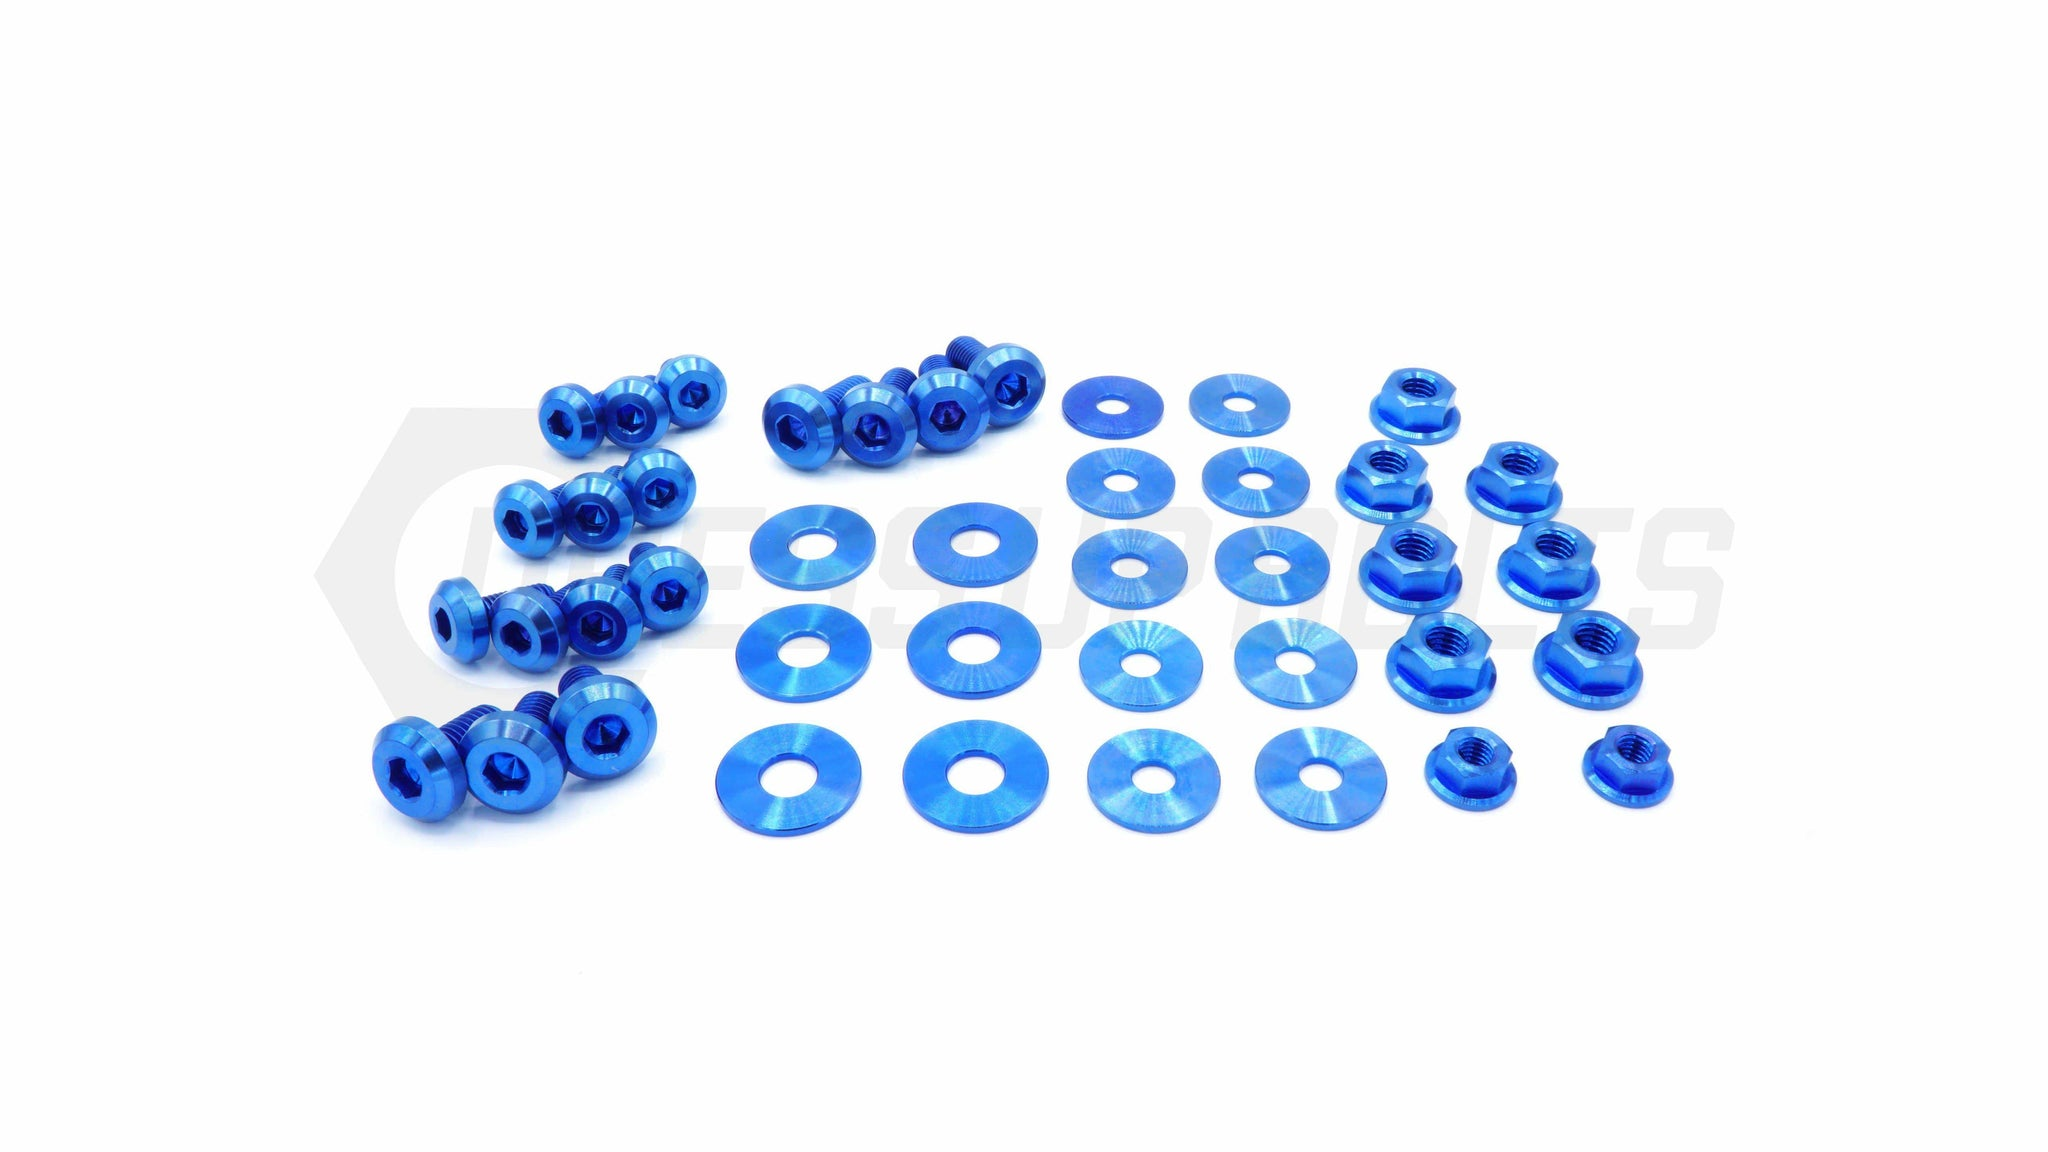 Subaru WRX/STI (2008-2014) Titanium Dress Up Bolts Engine Bay Kit - DressUpBolts.com